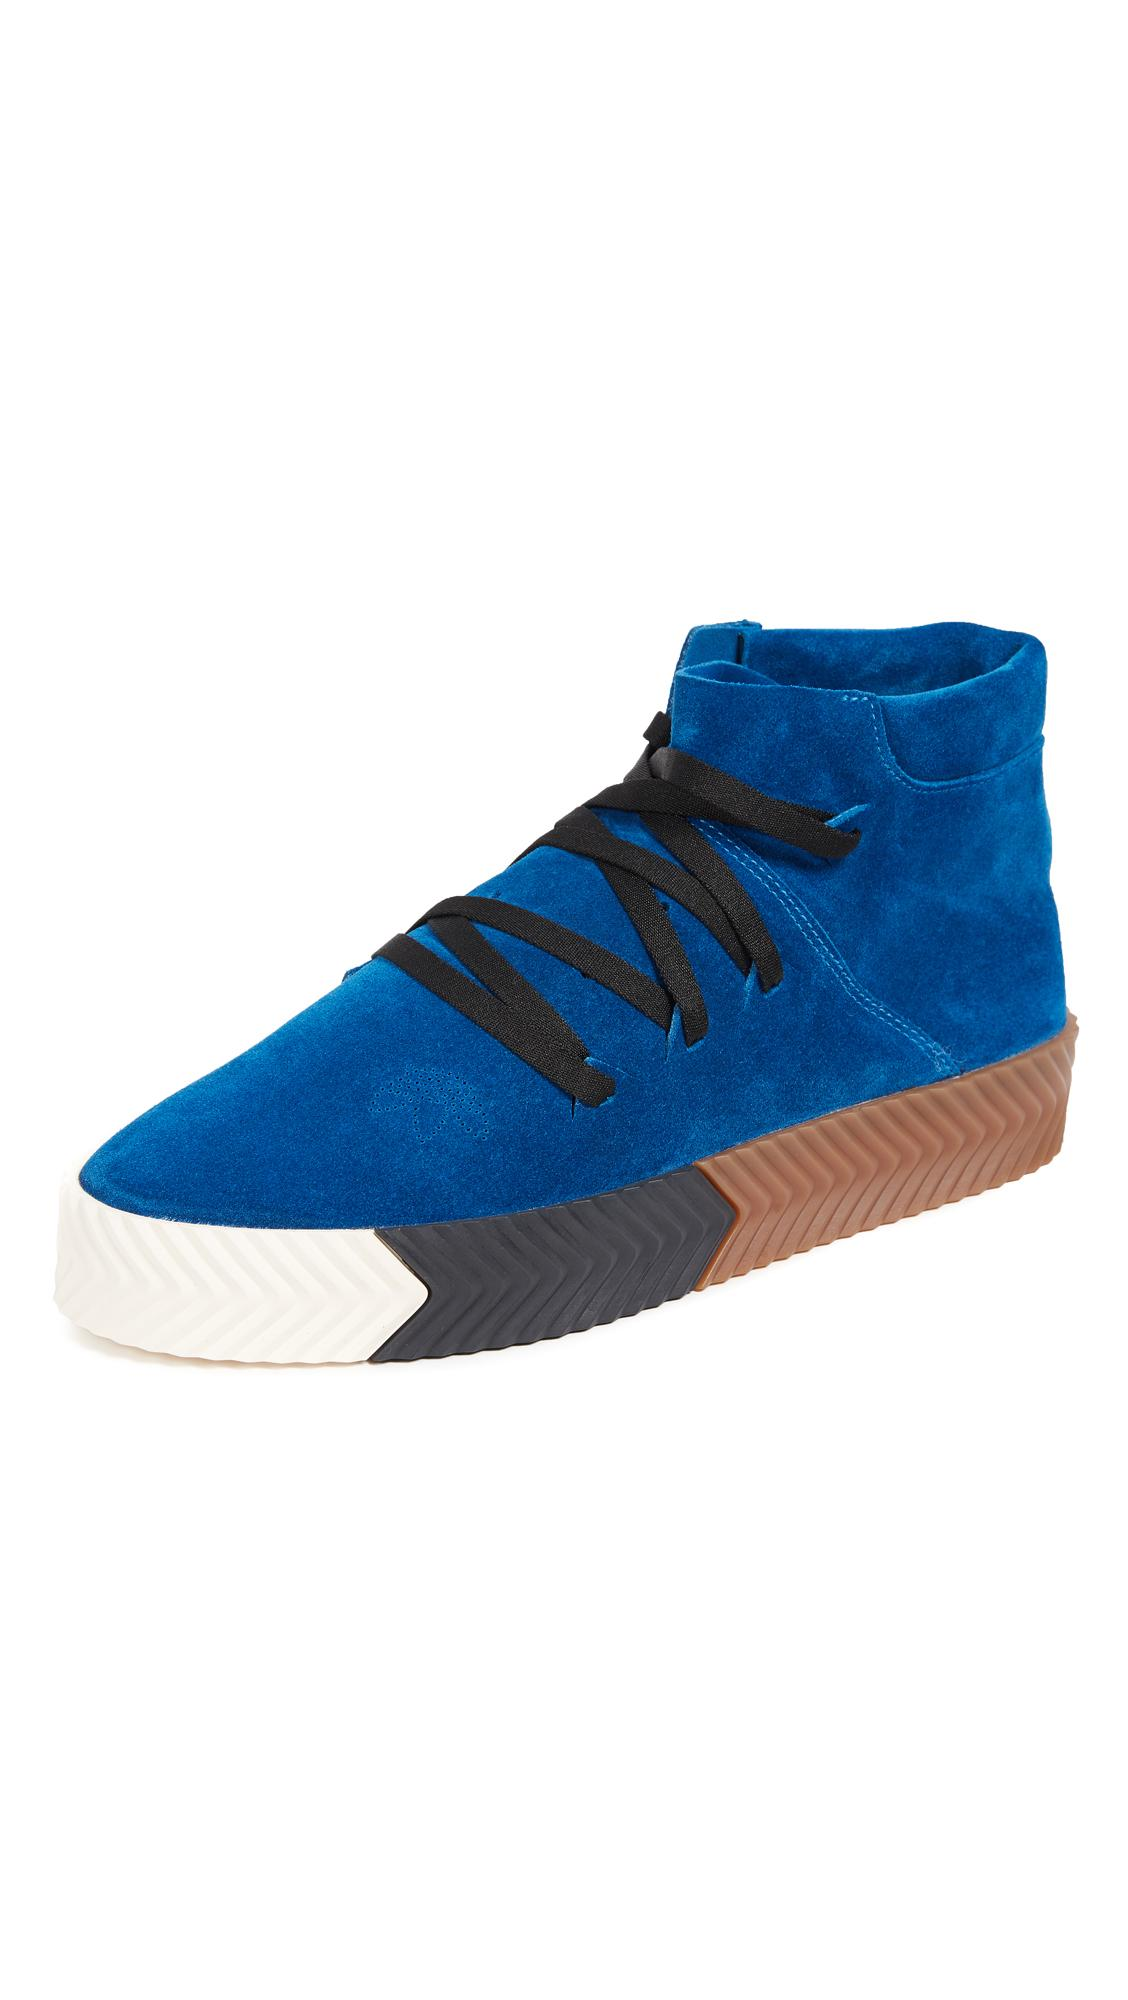 the best attitude 88a6c 1b0ba Adidas Originals By Alexander Wang Aw Skate Mid Sneakers In Bluebird